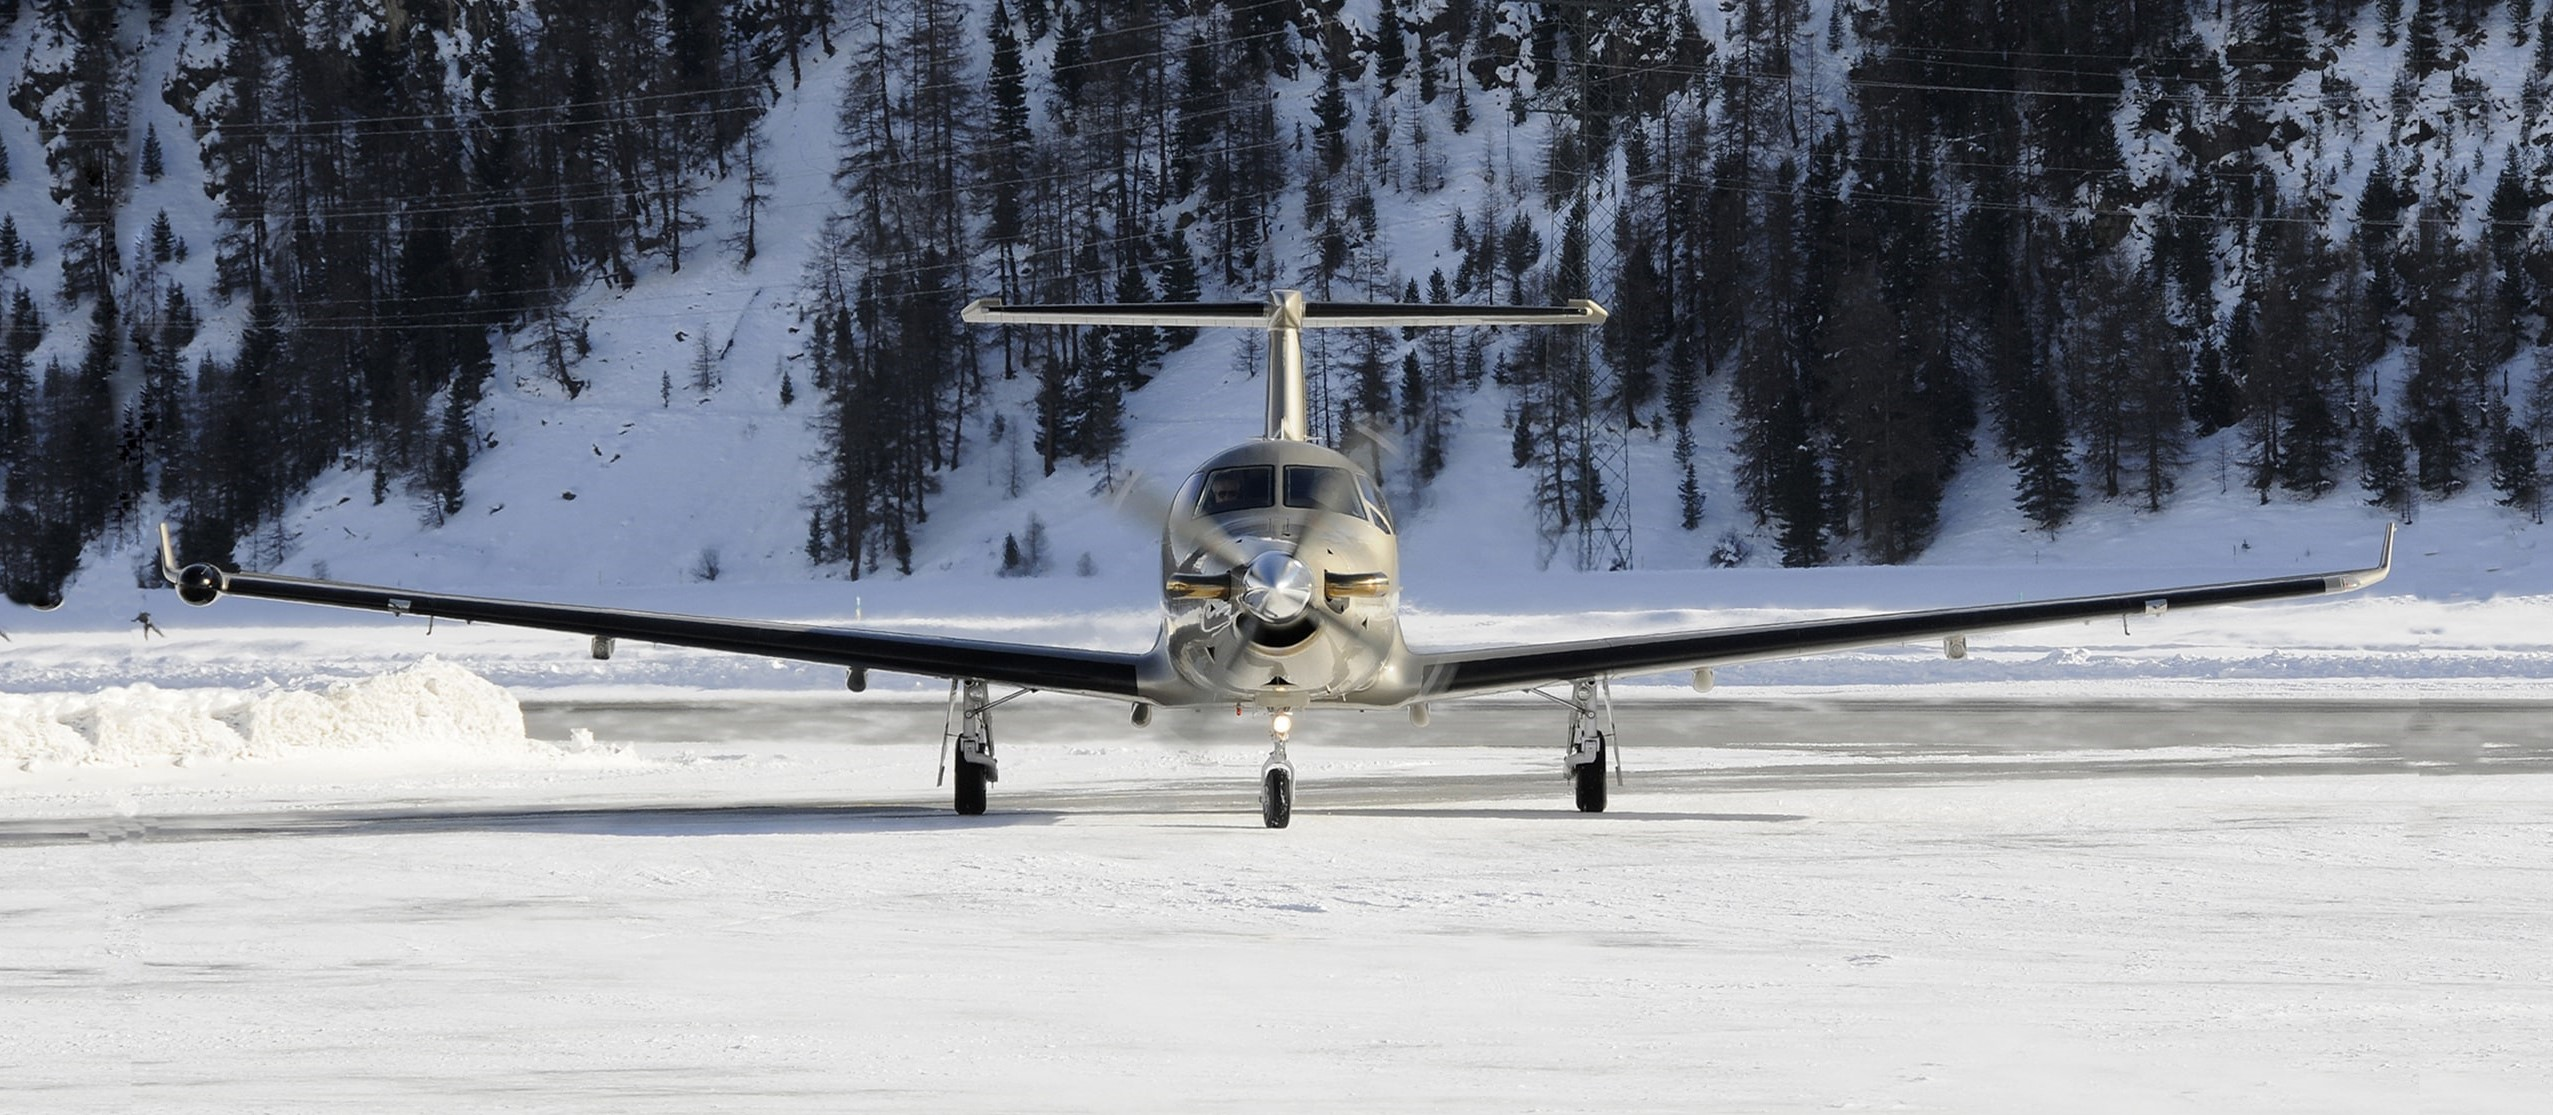 Pilatus PC-12 taxiing on snowy ground